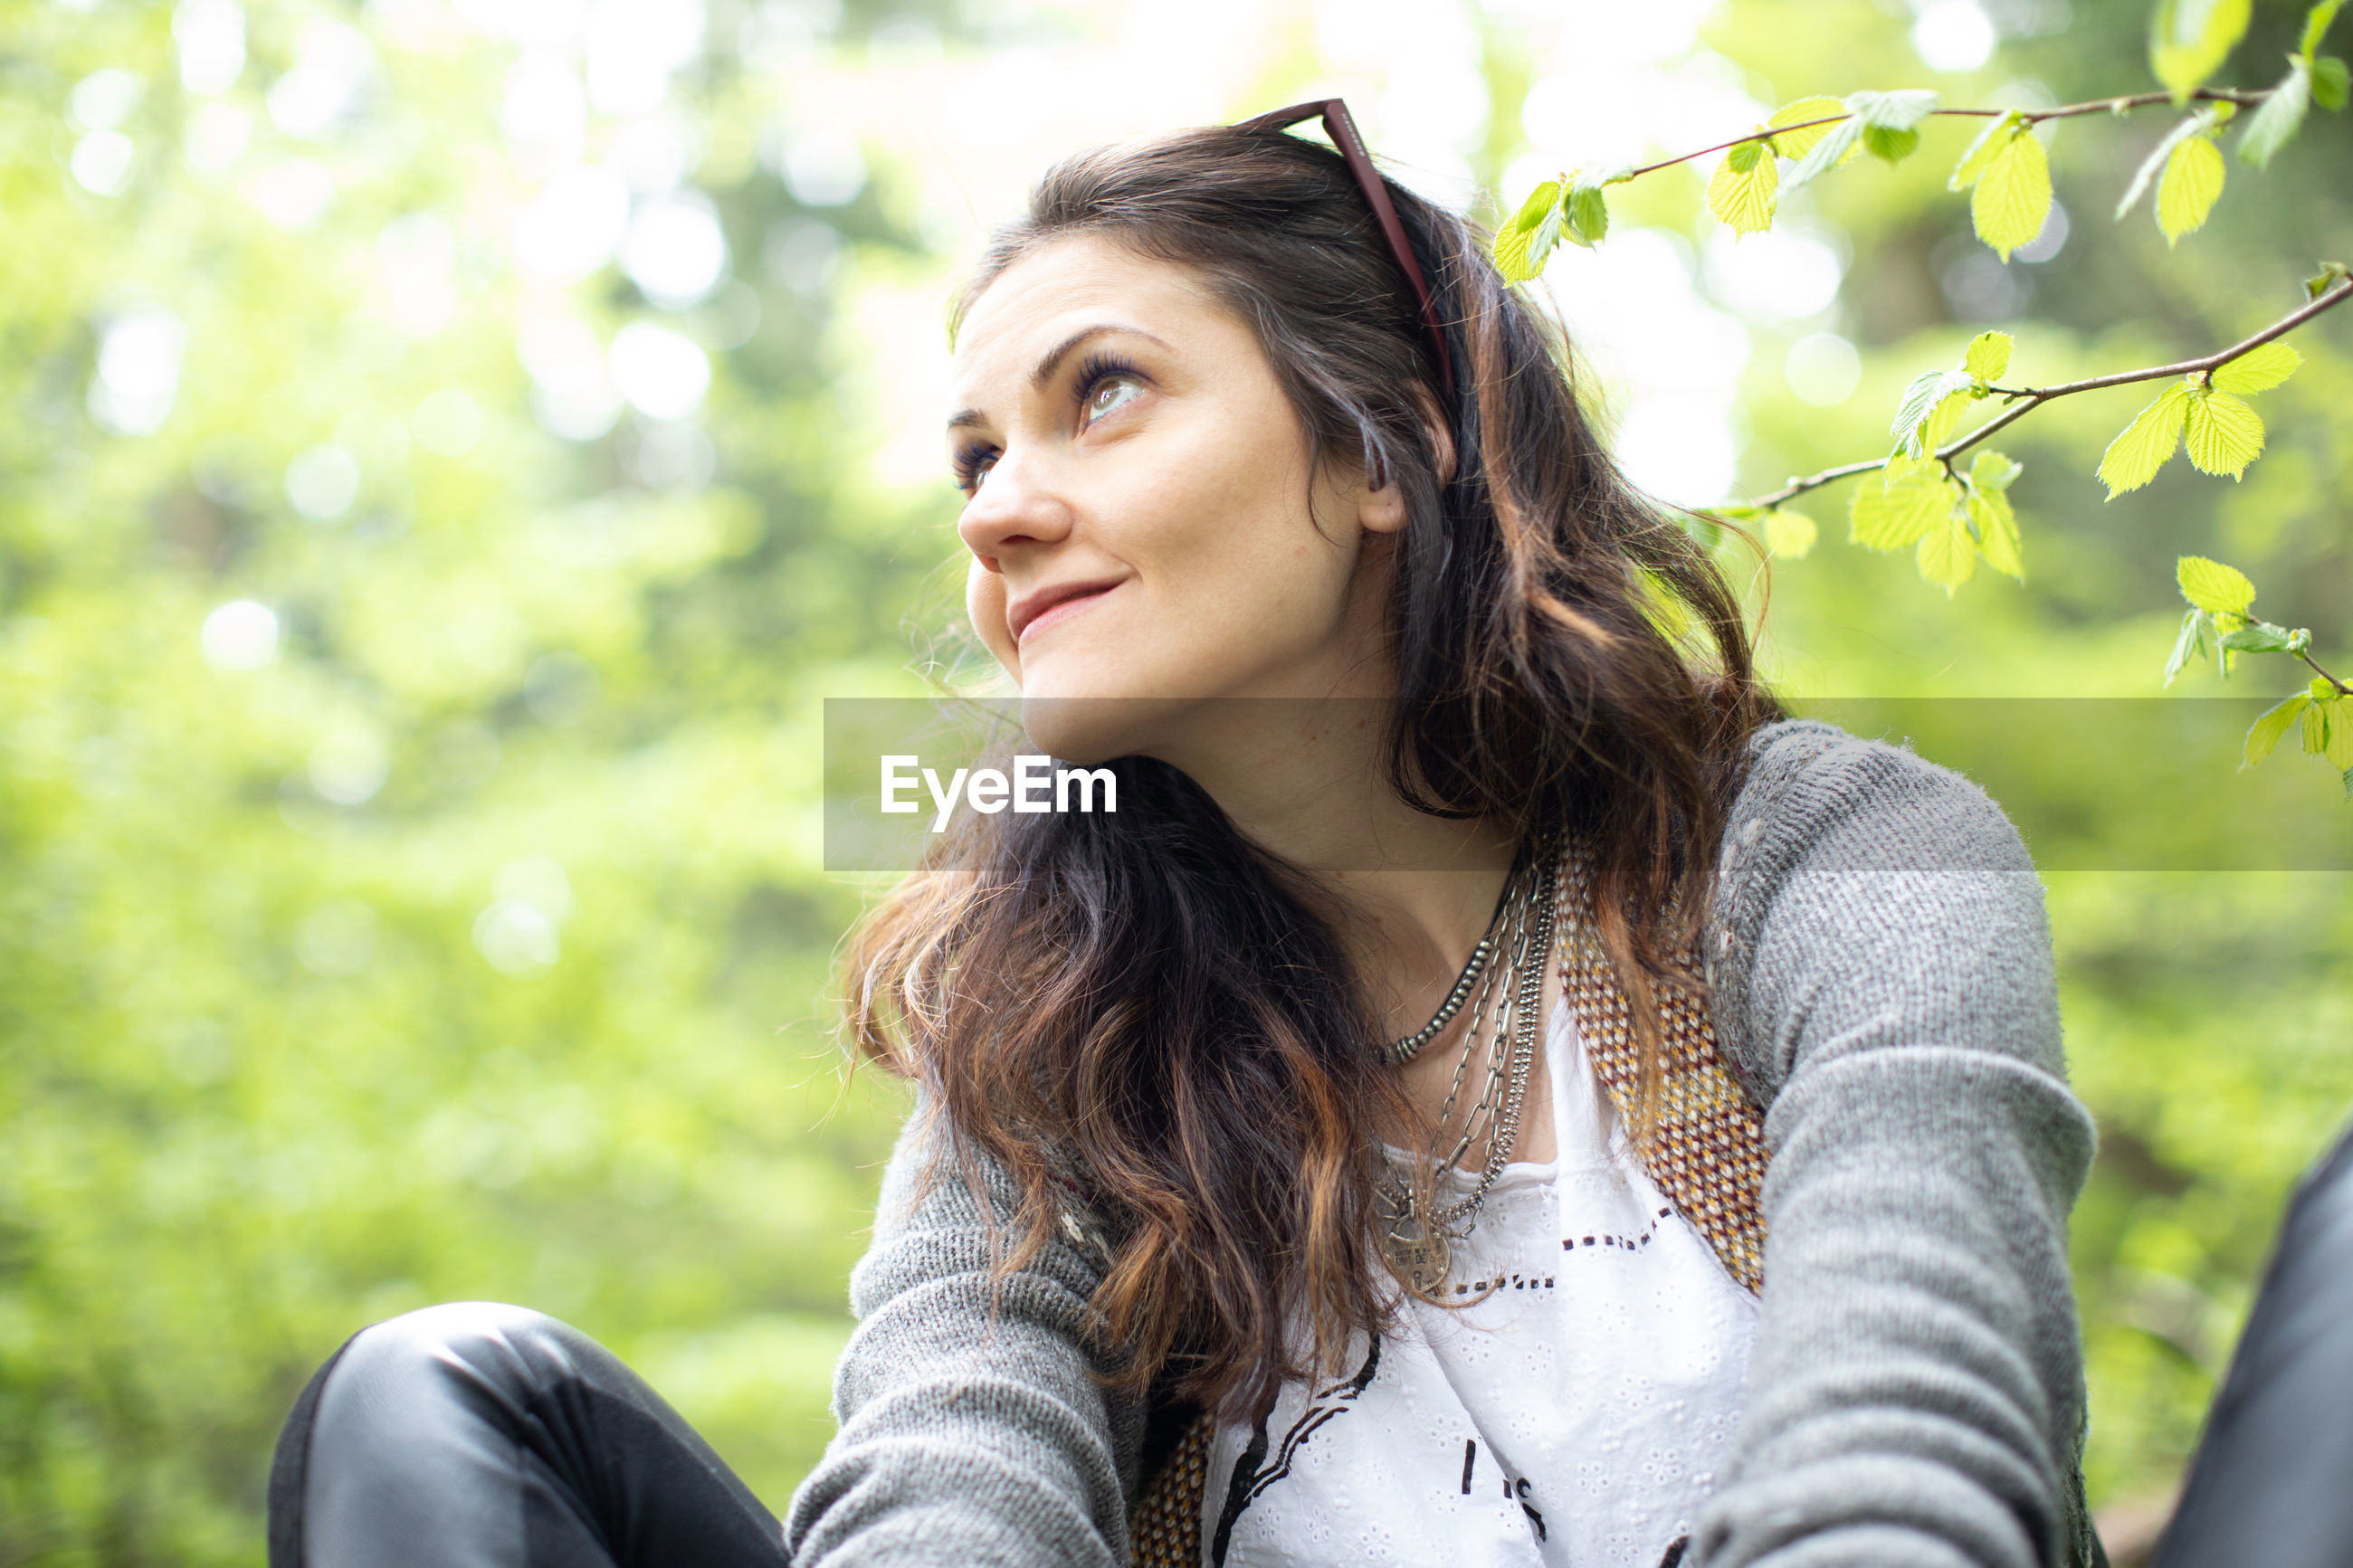 Low angle view of smiling woman sitting in forest